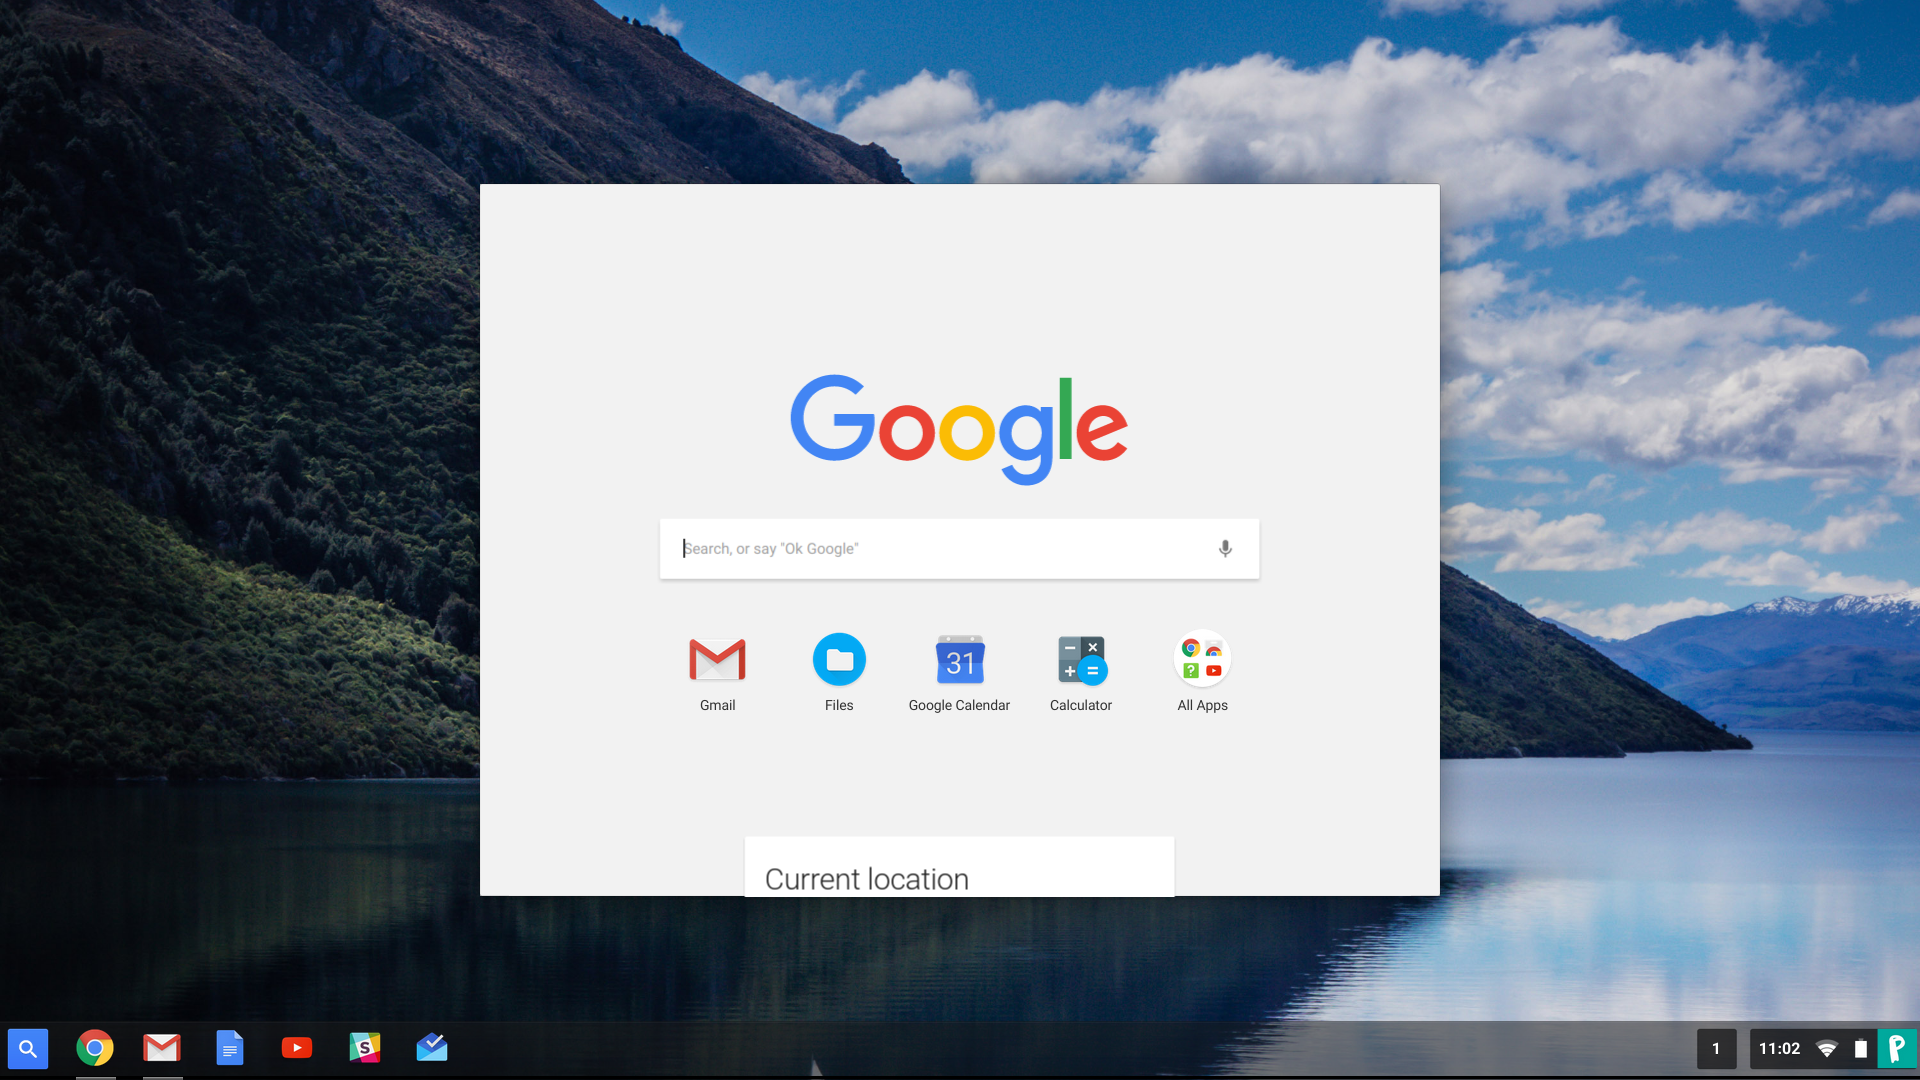 Chrome OS is awesome, but it desperately needs these features